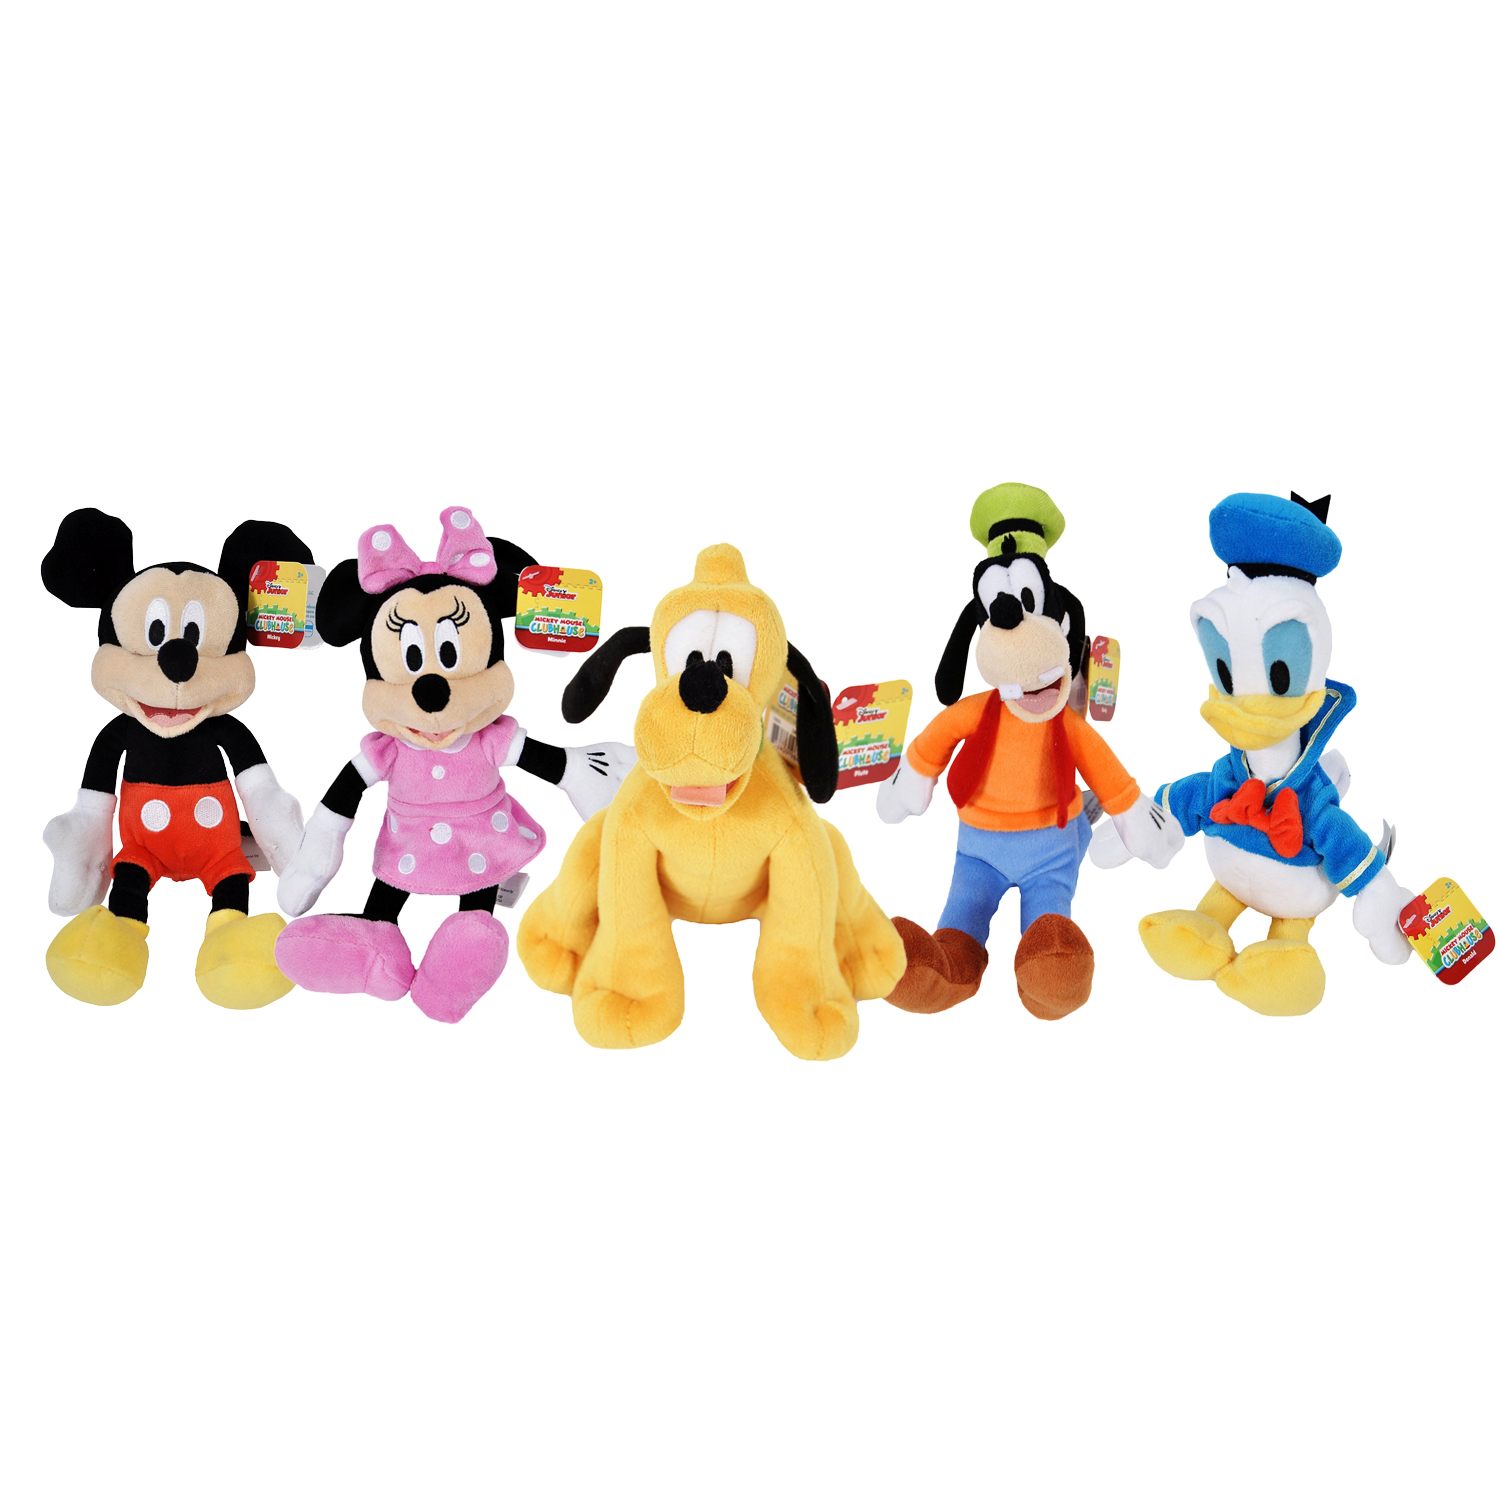 "Disney 9"" Beanbag Plush Stuffed Dolls 5-Pack Mickey Minnie Donald Pluto Goofy"